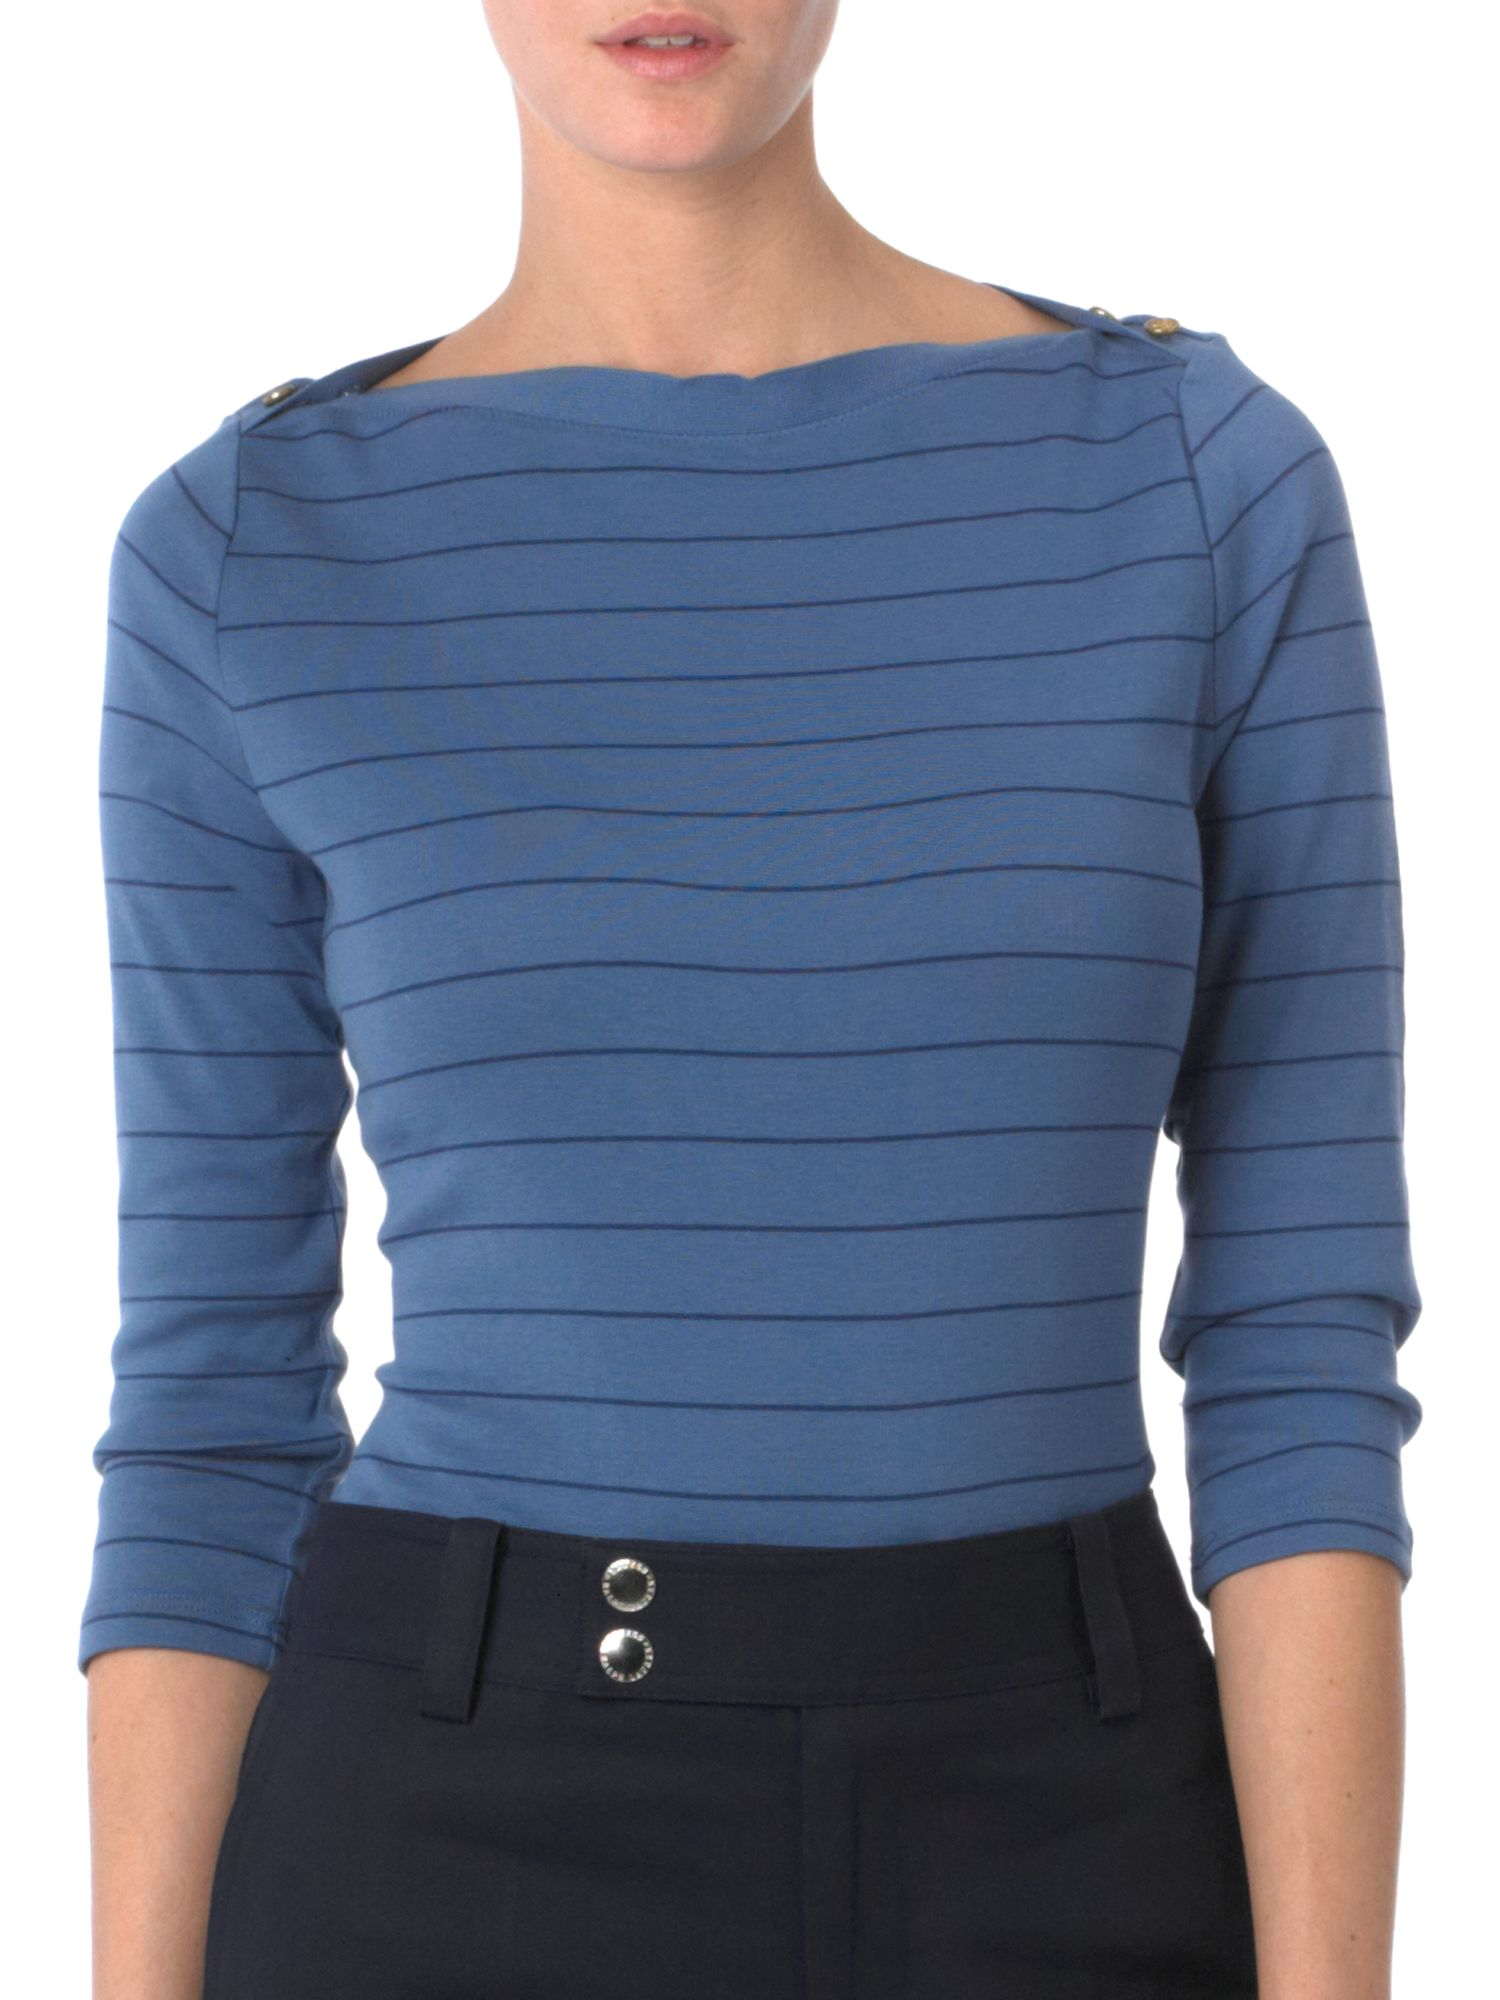 Lauren by Ralph Lauren Button shoulder stripey tee product image